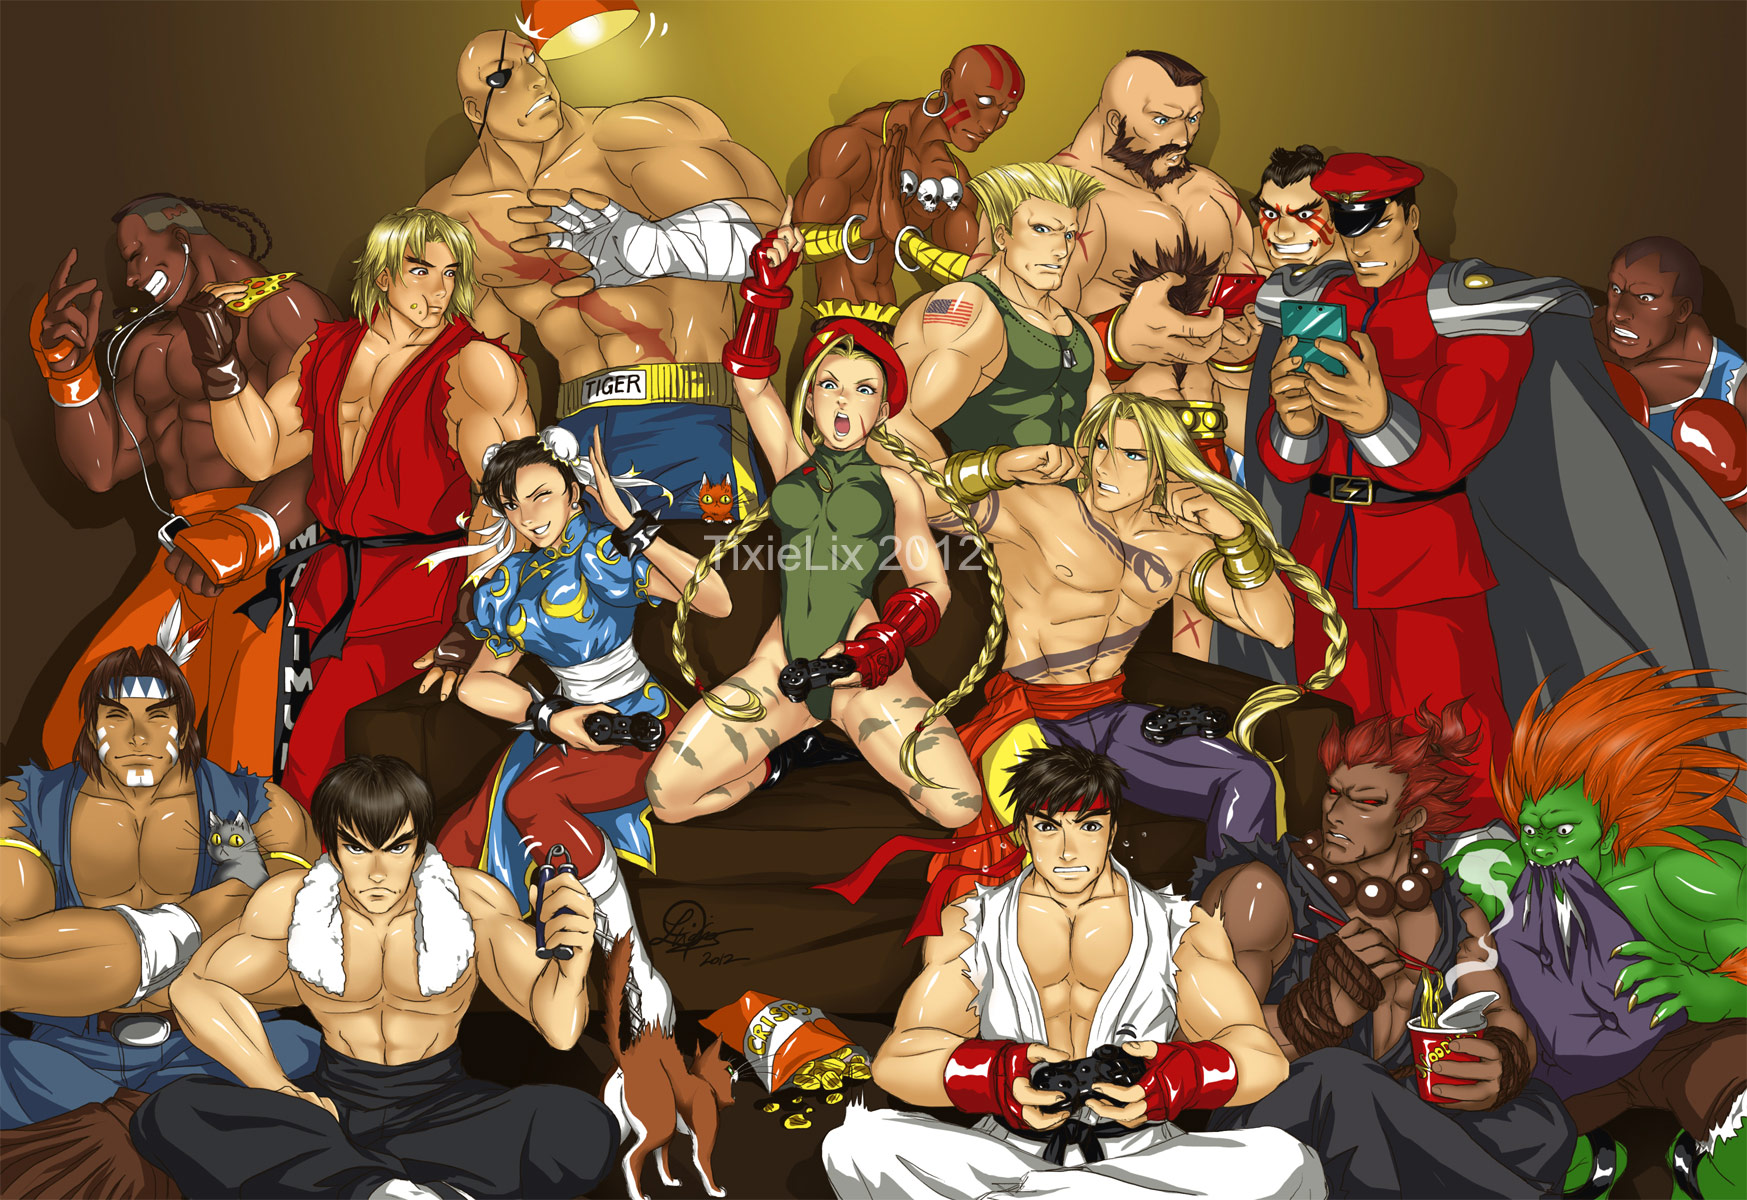 Fighting game artwork by TixieLix #11